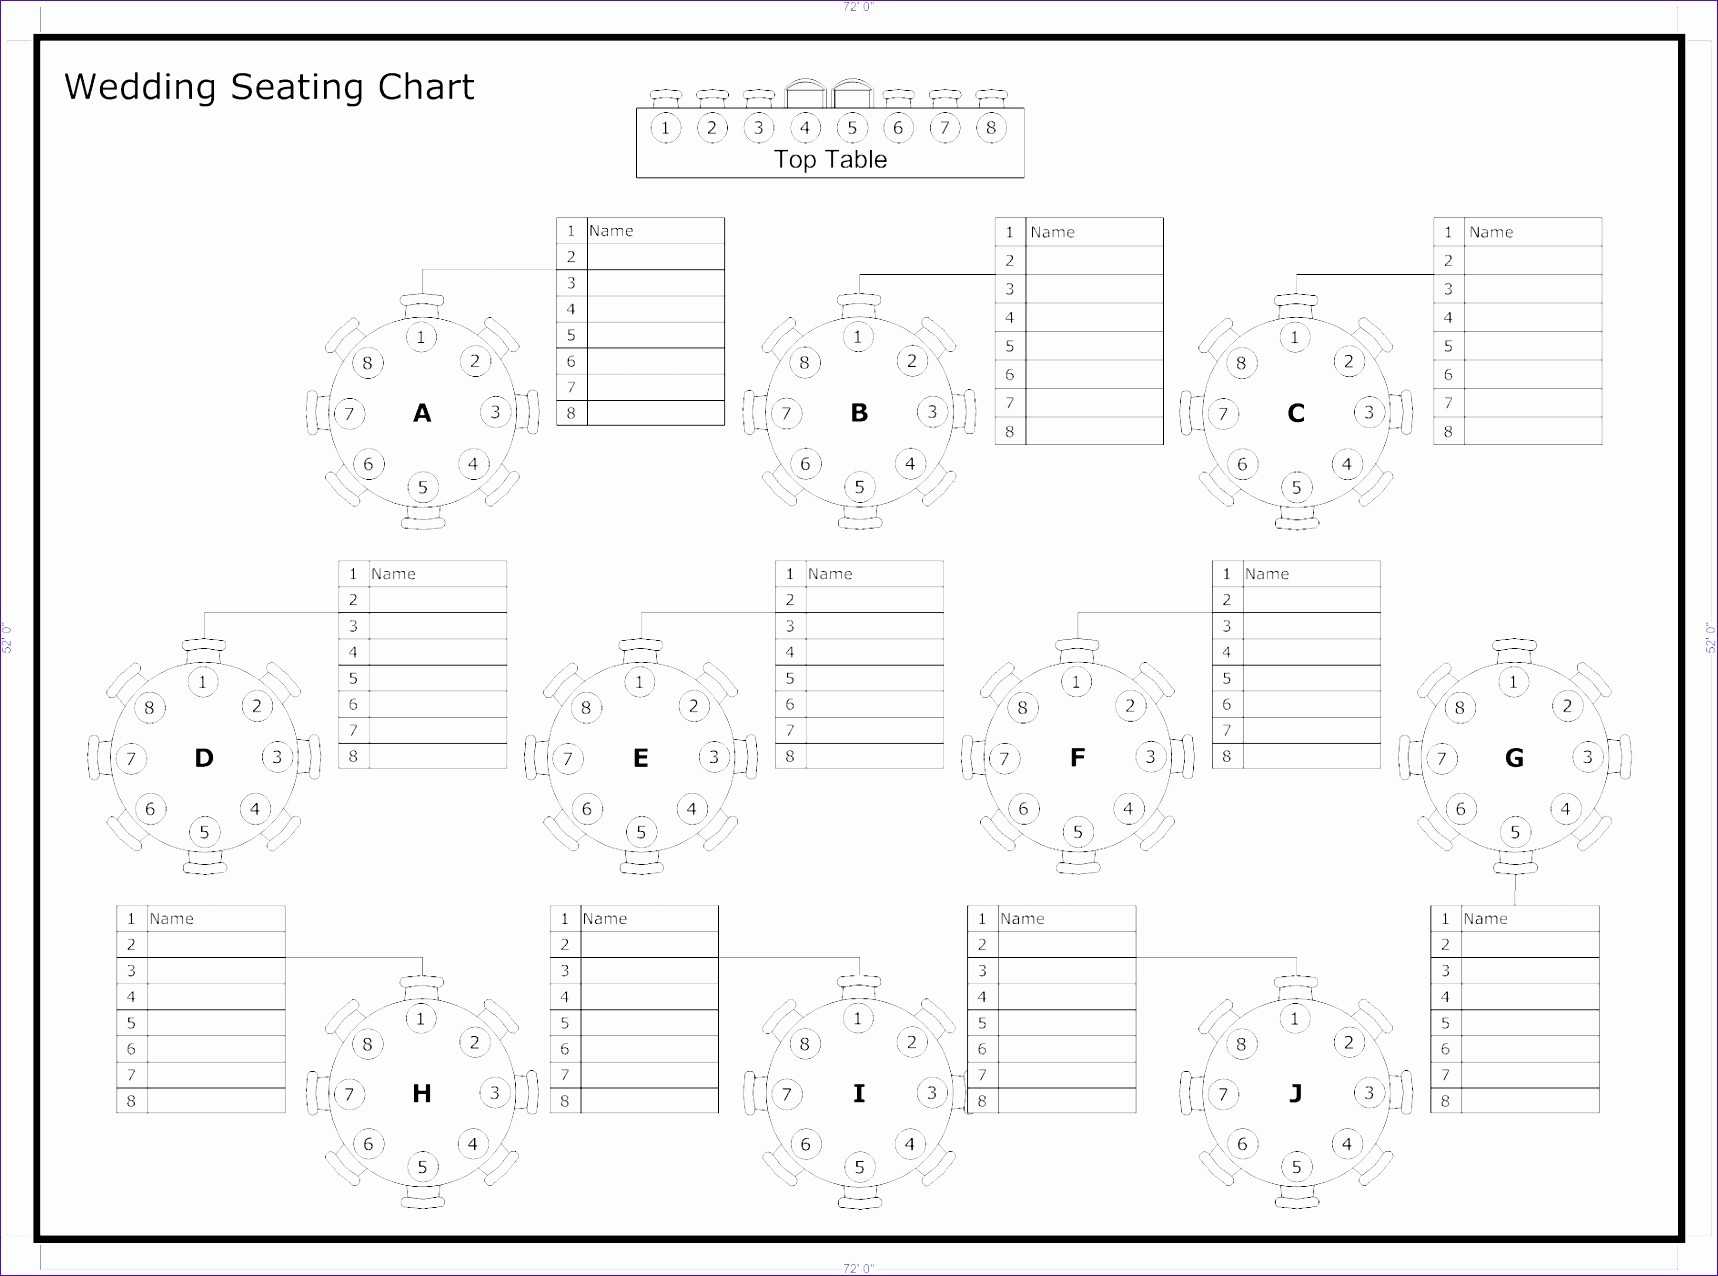 Free Table Seating Chart Template Unique 6 Wedding Seating Chart Template Excel Exceltemplates